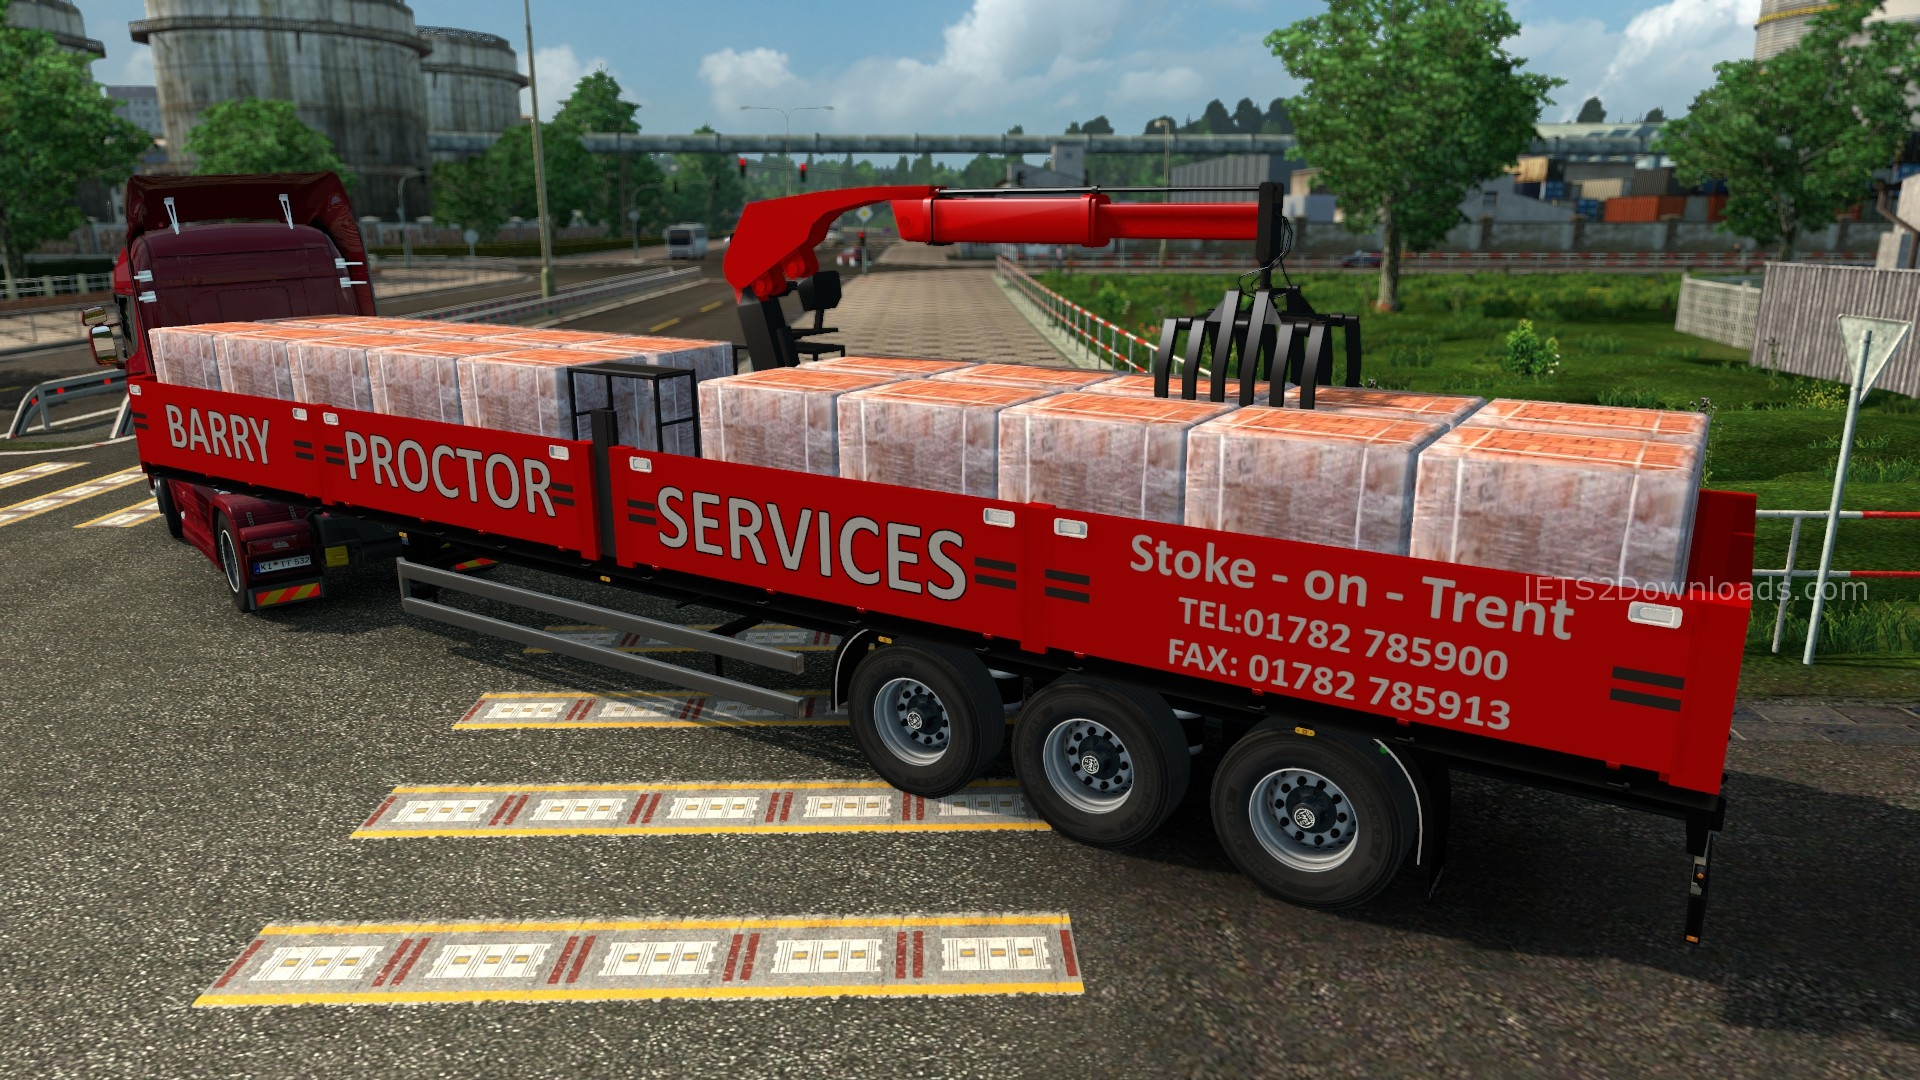 barry-proctor-service-trailer-pack-1